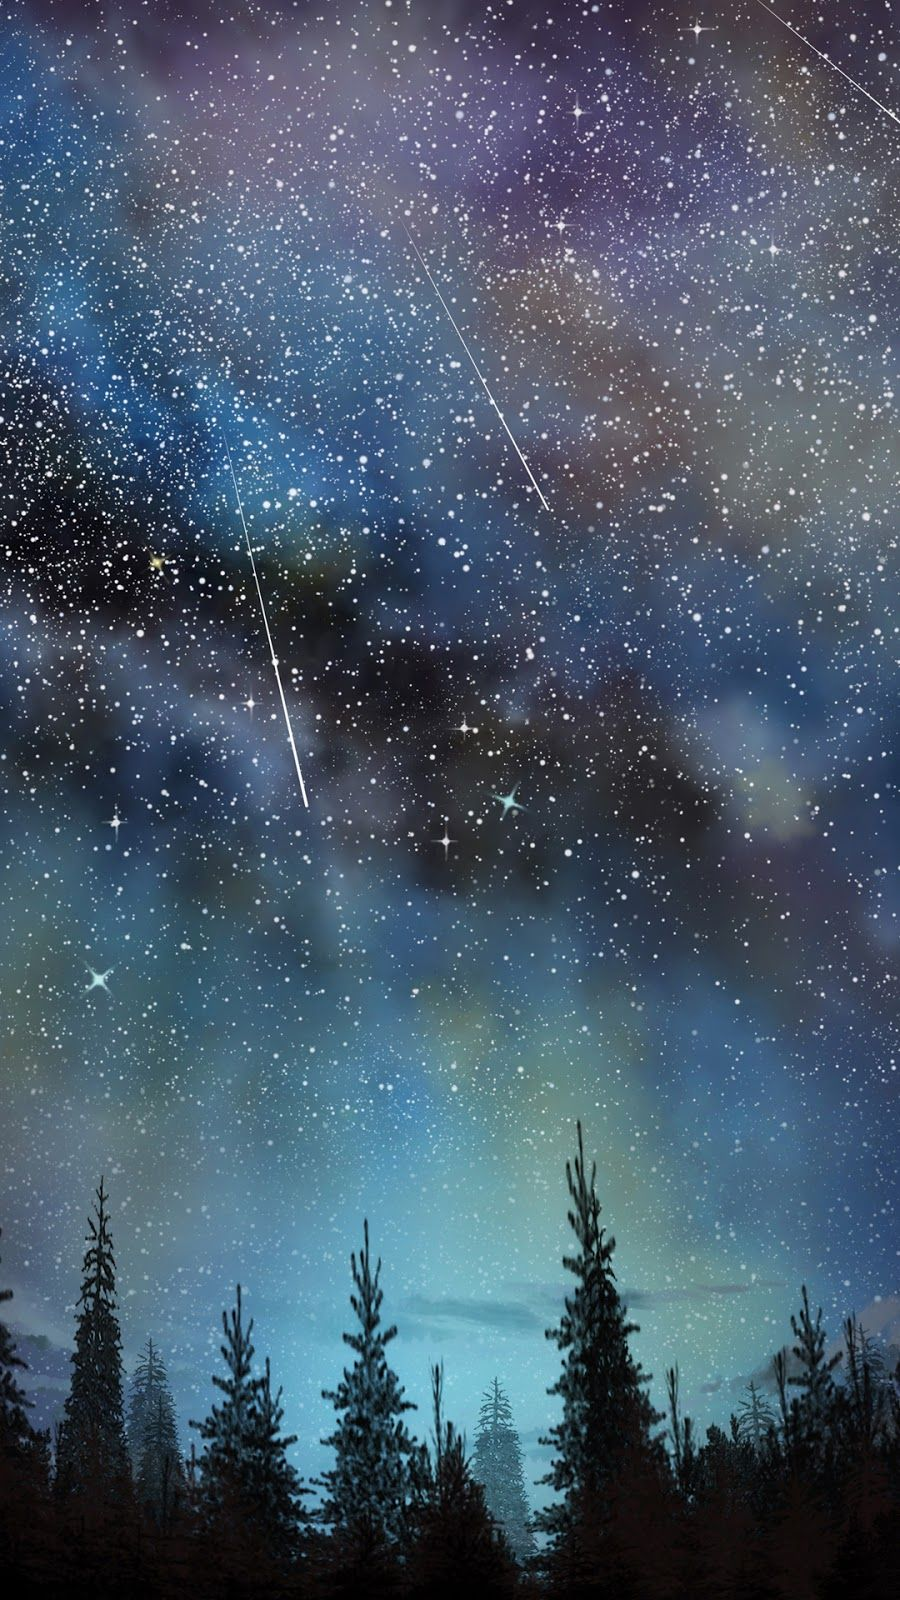 Shooting Star Fondo De Pantalla Iphone Tumblr Fondos De